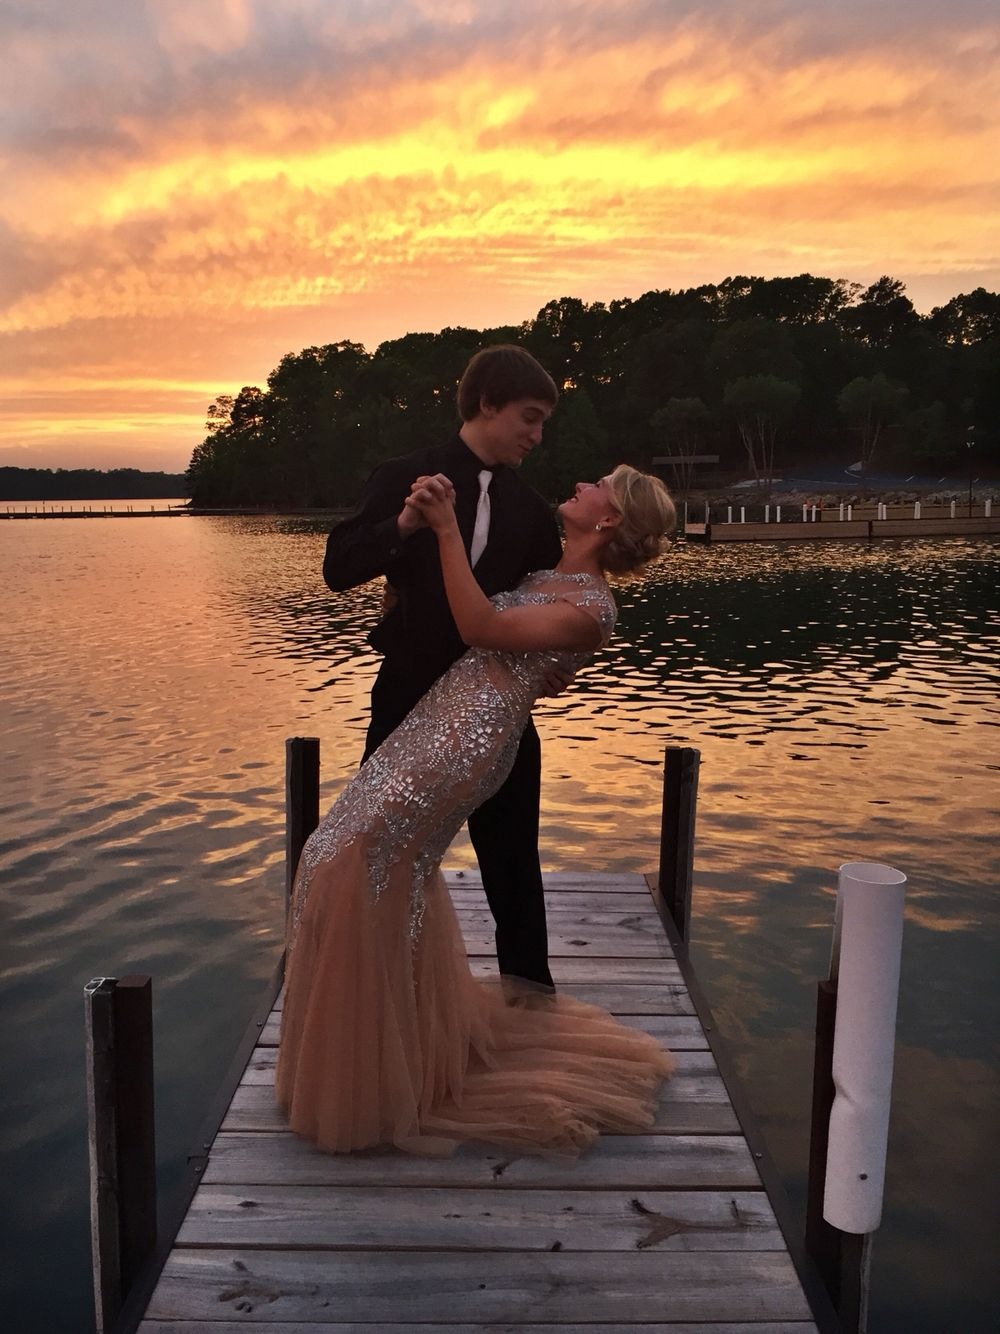 Prom pictures on the lake